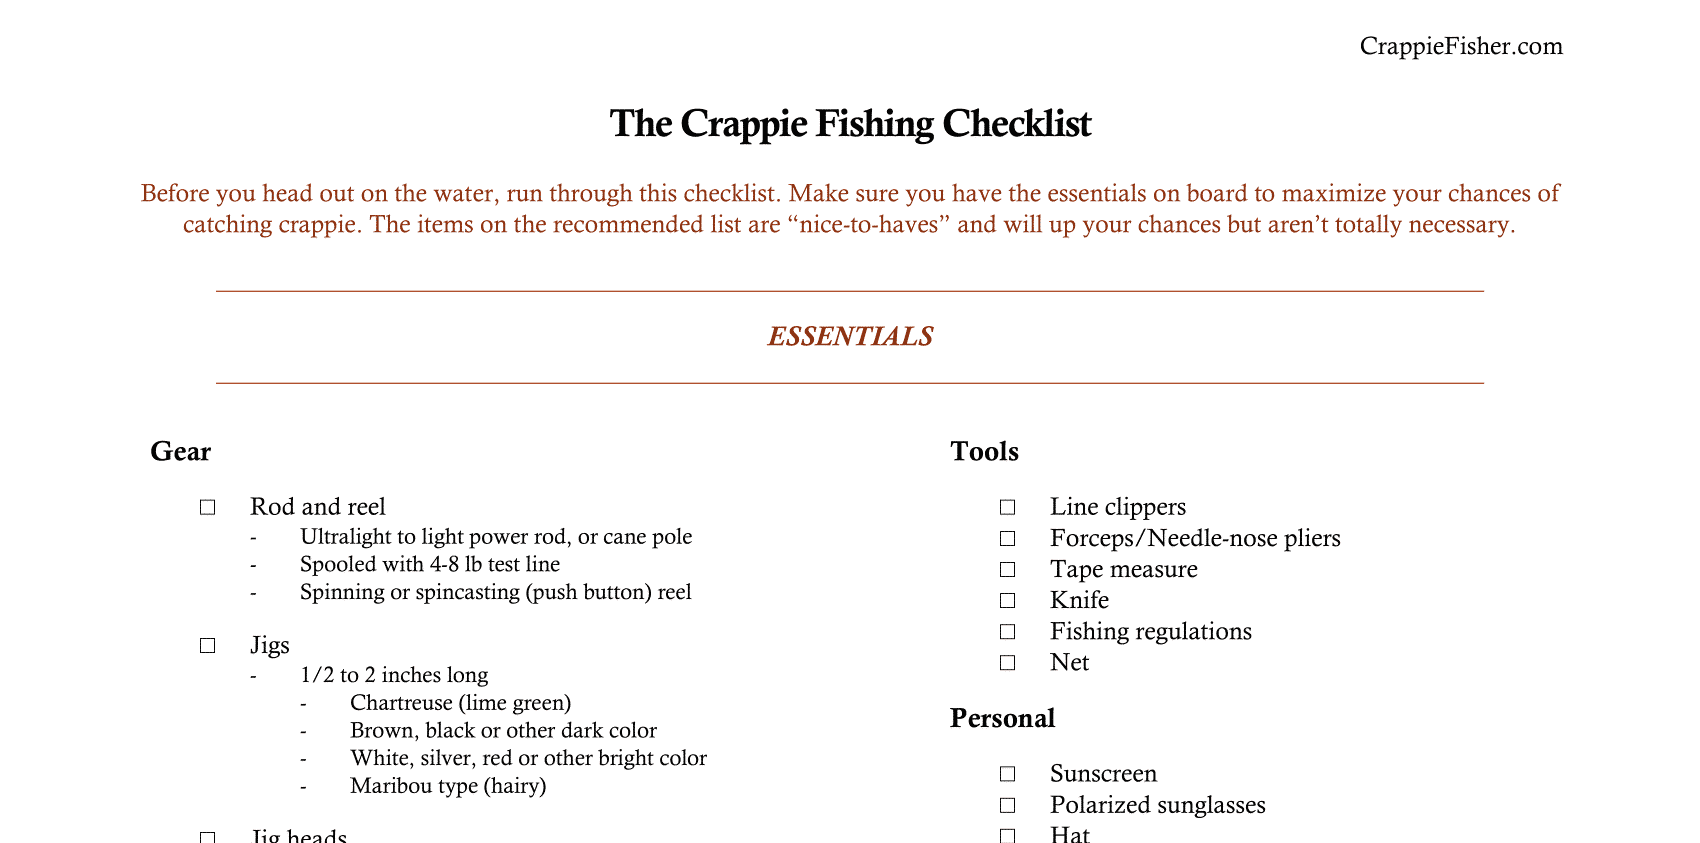 a checklist to run through before crappie fishing